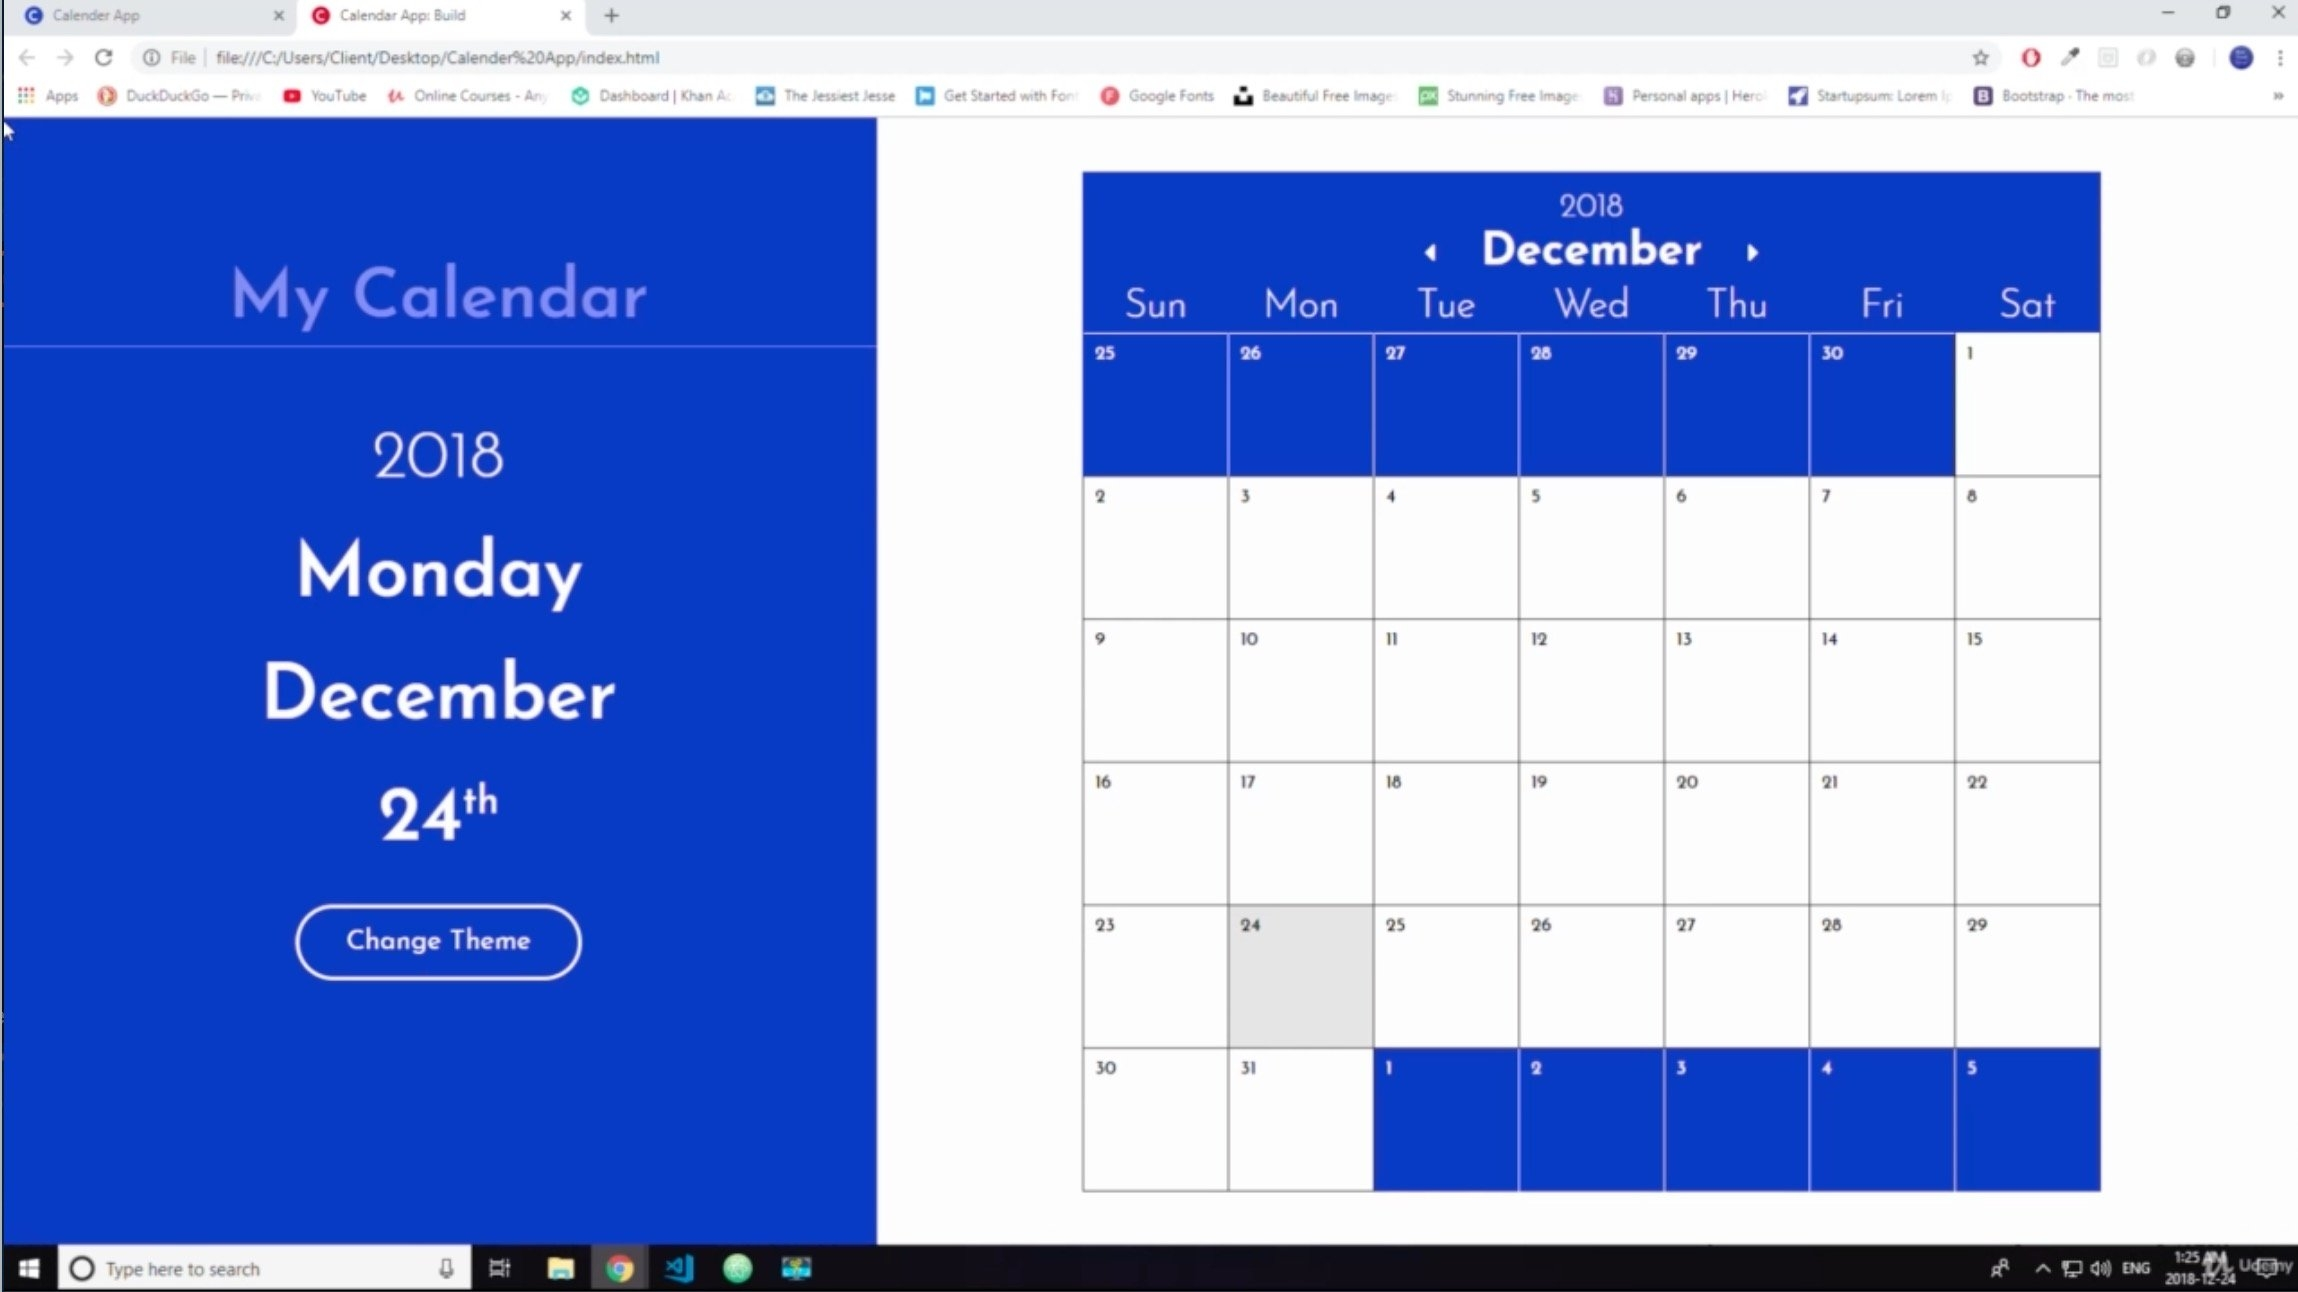 2019 Calendar App: Let's Build It! | Review Calendar 2019 App